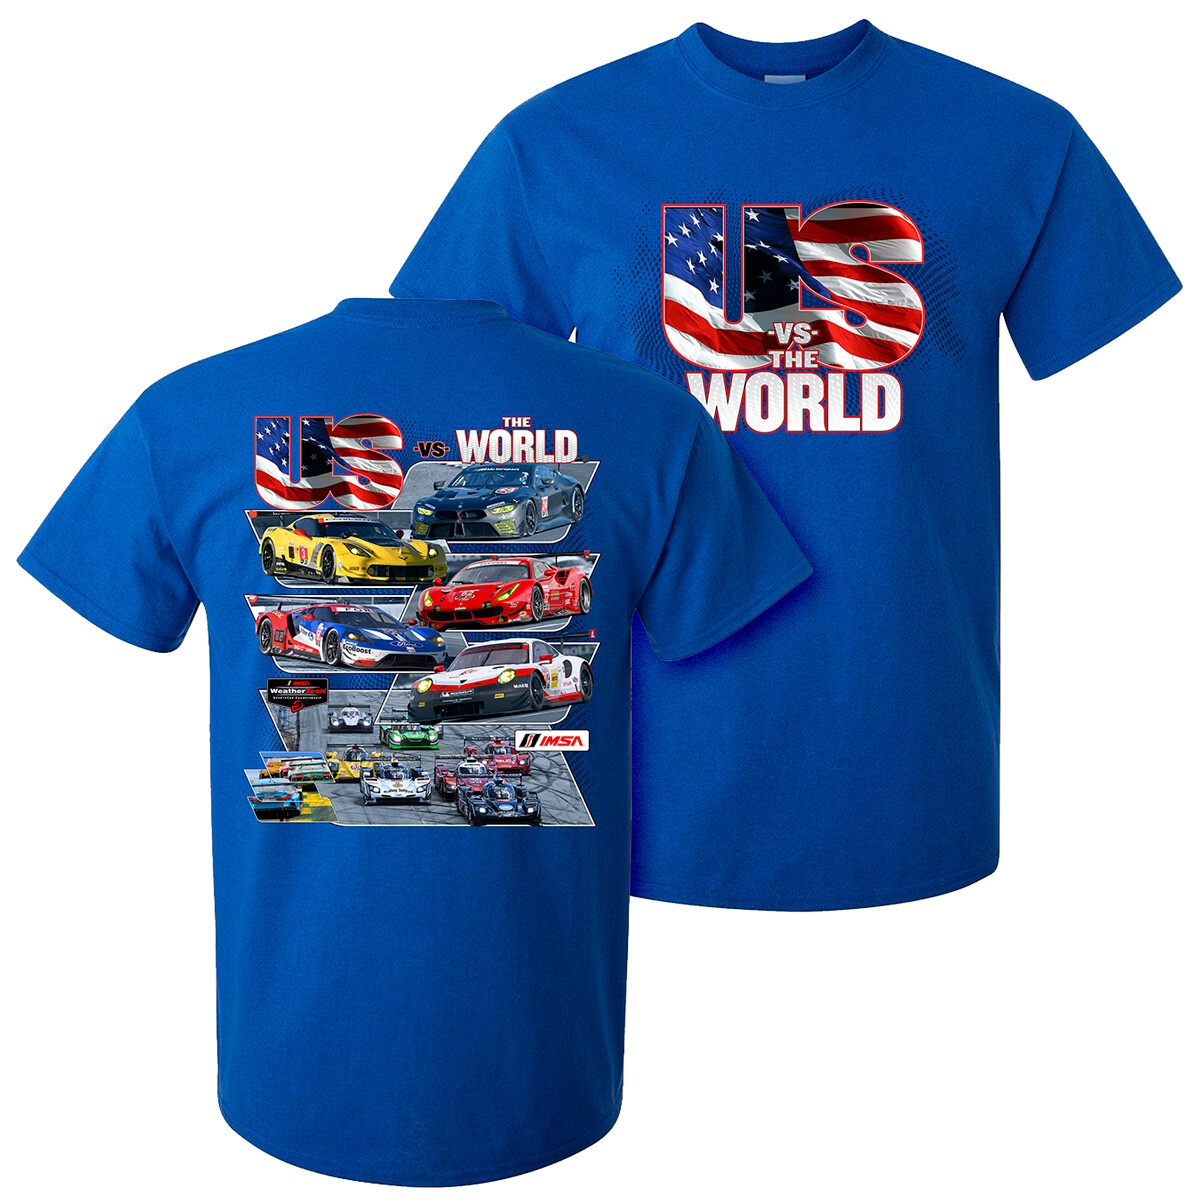 Us  Vs. The World Tee - Antique Royal